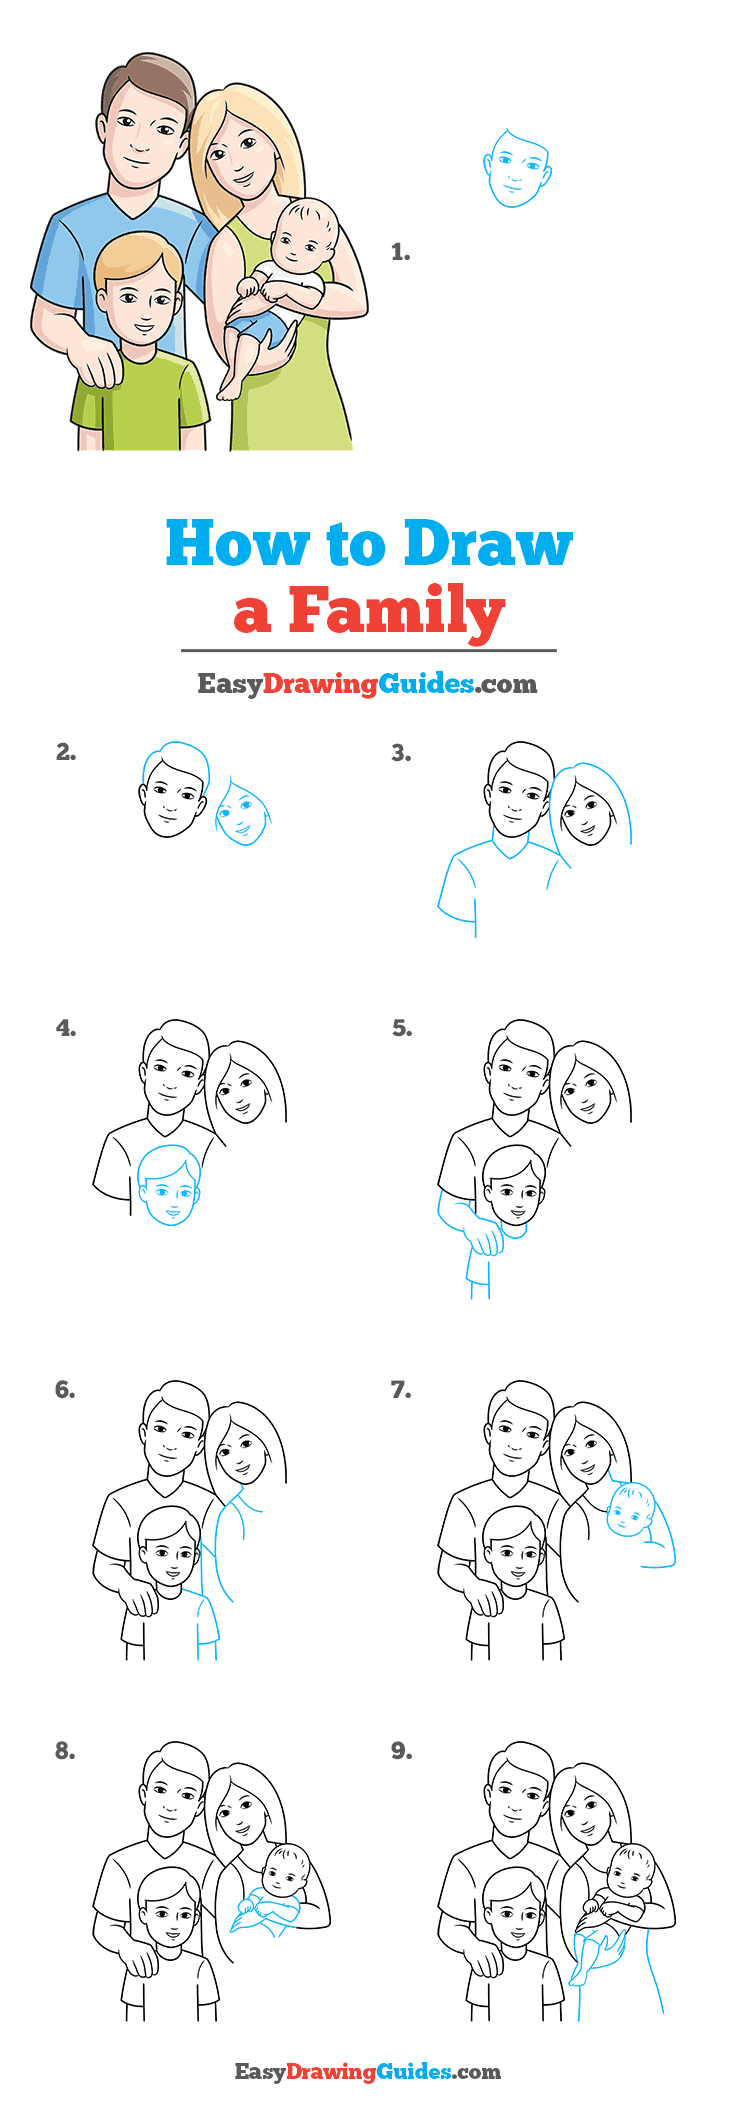 How to Draw a Family Step by Step Tutorial Image